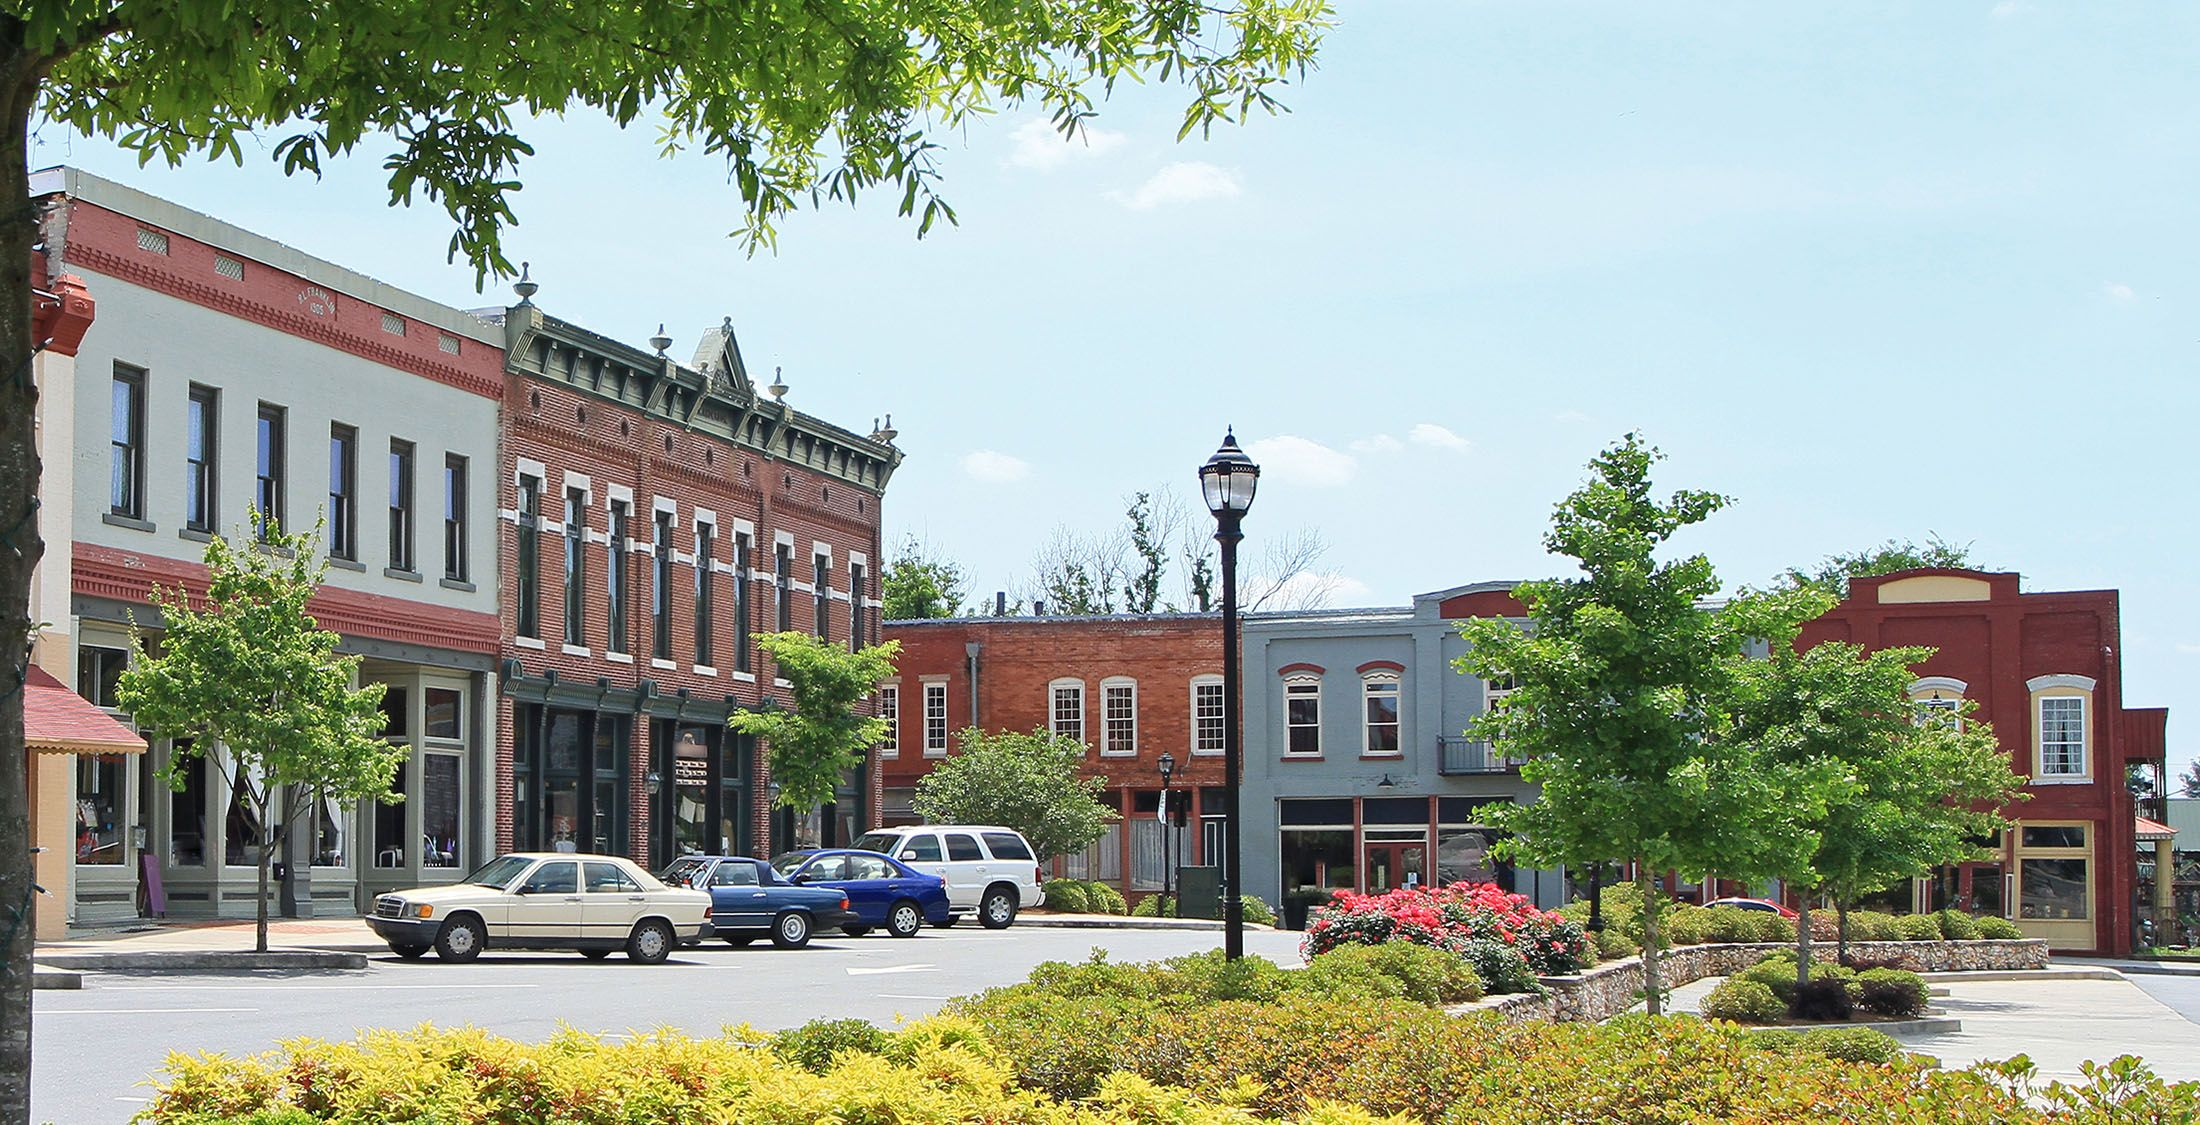 downtown area of a small town